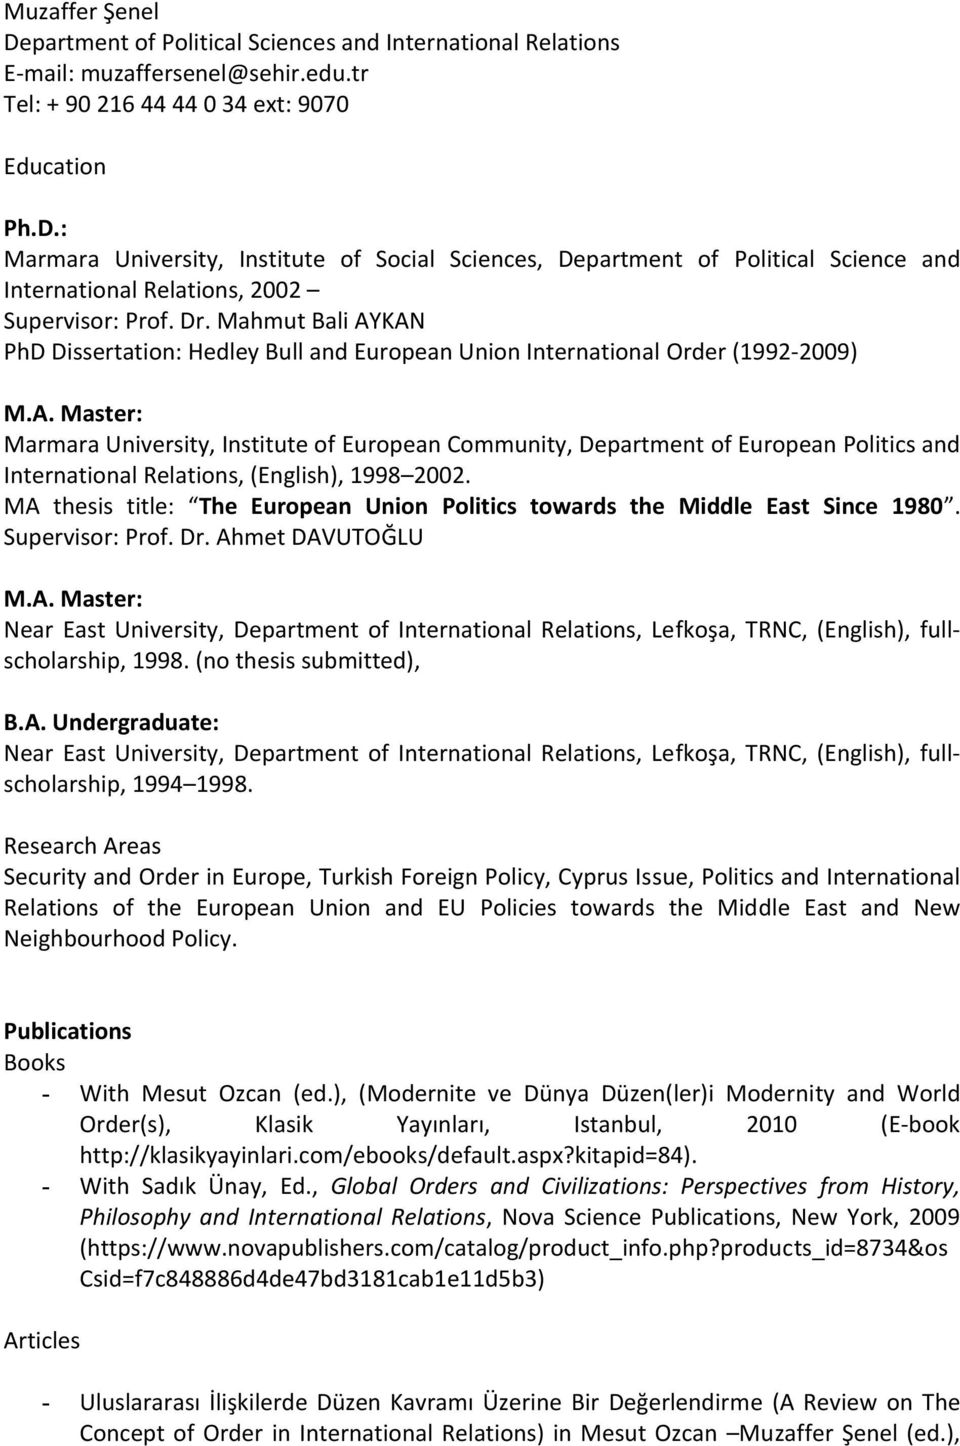 MA thesis title: The European Union Politics towards the Middle East Since 1980. Supervisor: Prof. Dr. Ahmet DAVUTOĞLU M.A. Master: Near East University, Department of International Relations, Lefkoşa, TRNC, (English), fullscholarship, 1998.